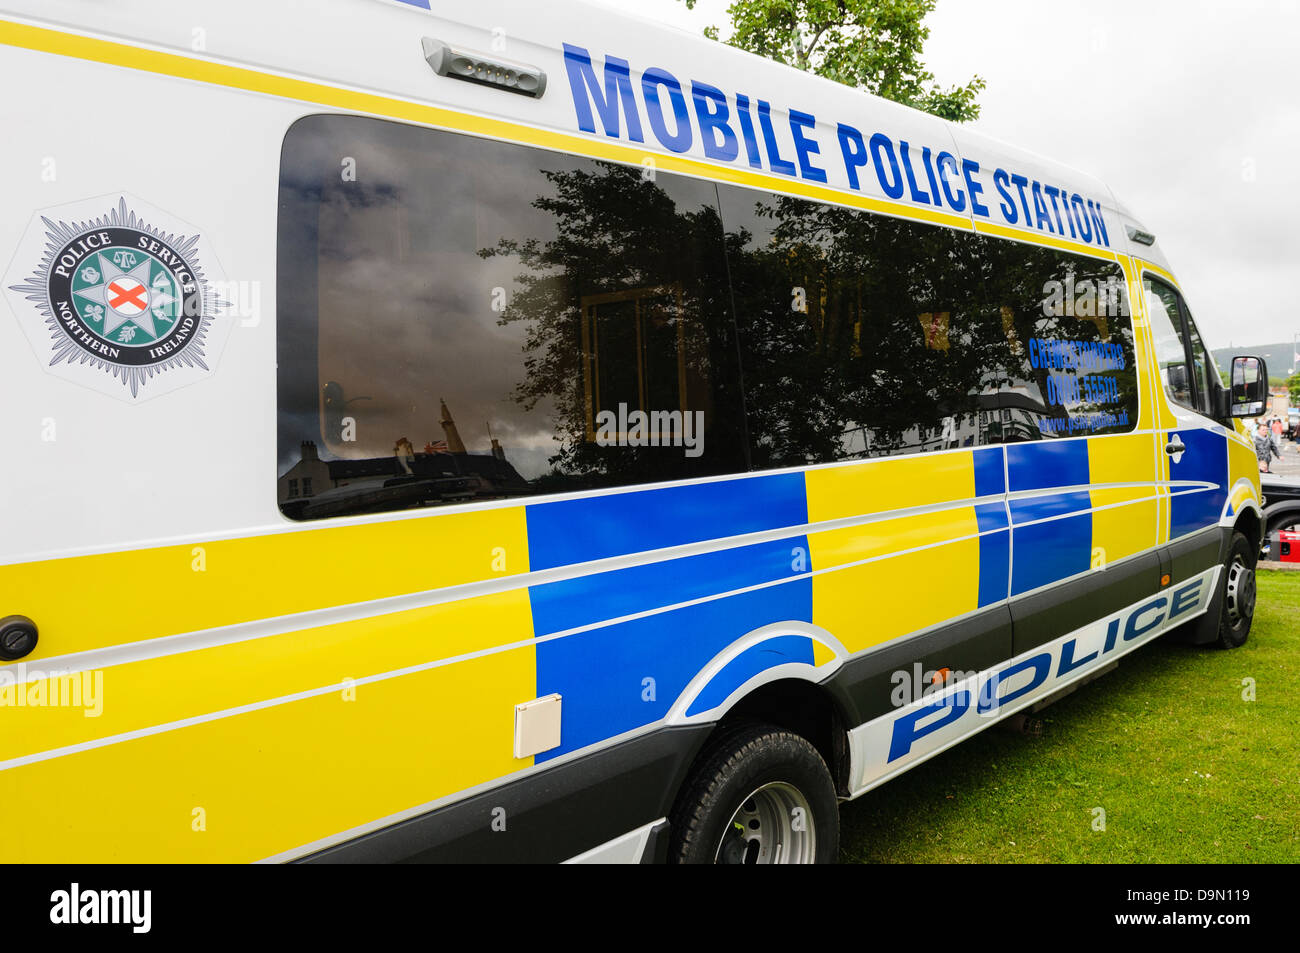 Large van converted into a mobile police station for use in emergency situations - Stock Image